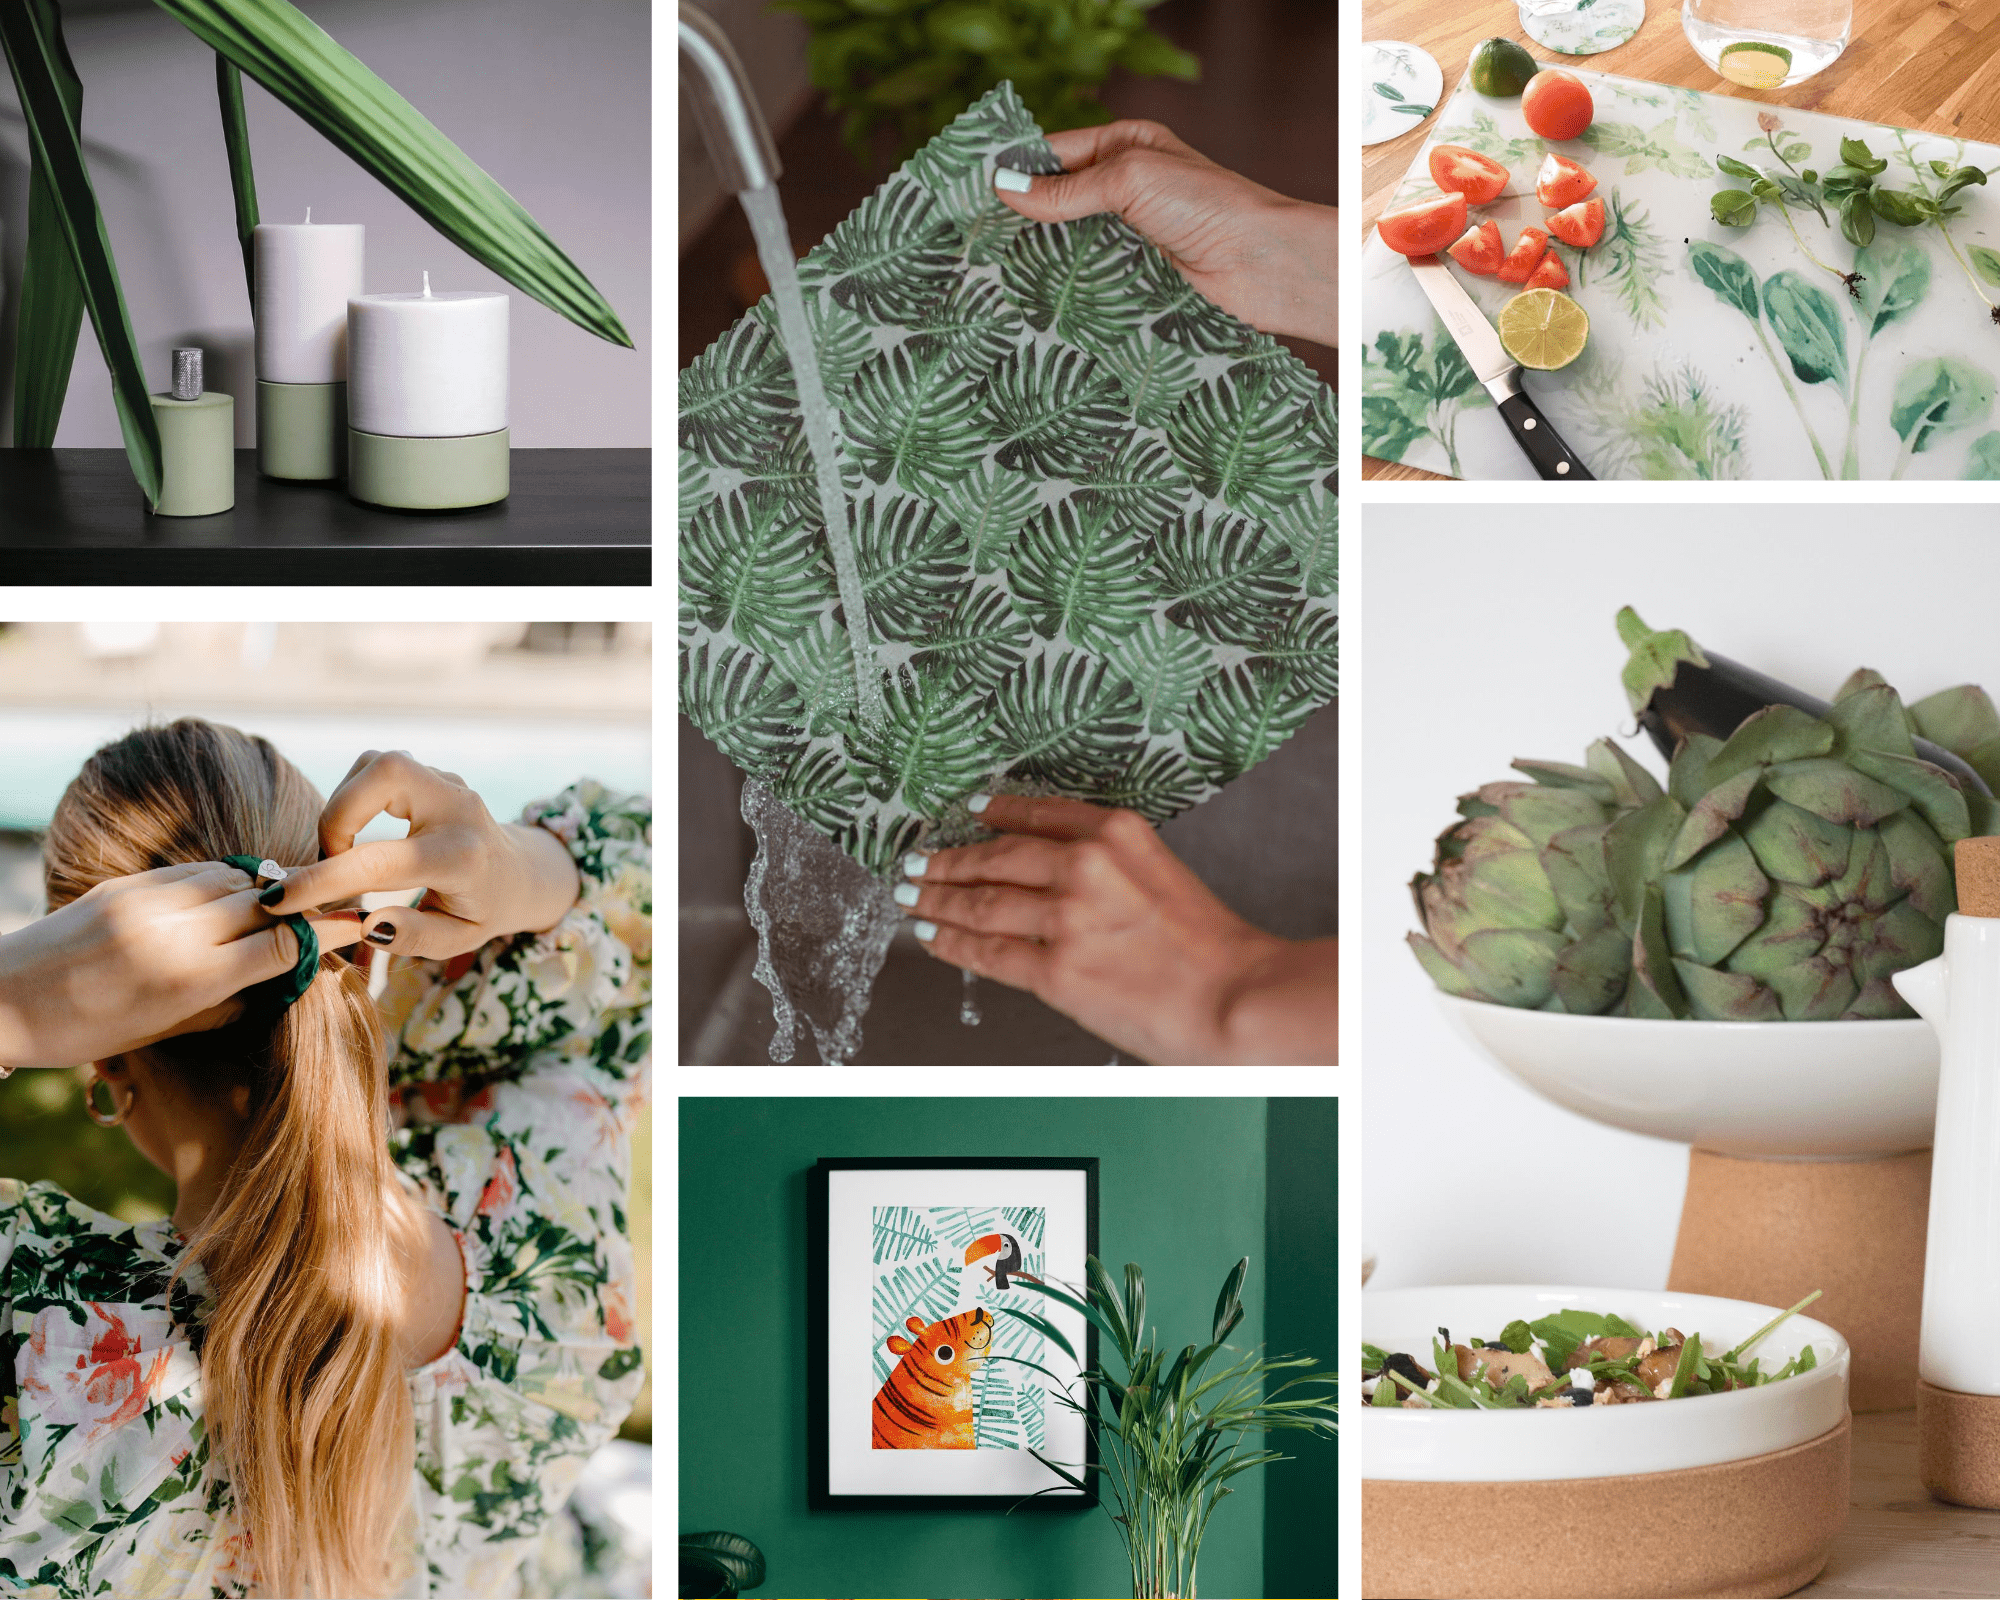 Top Drawer trend: At one with nature